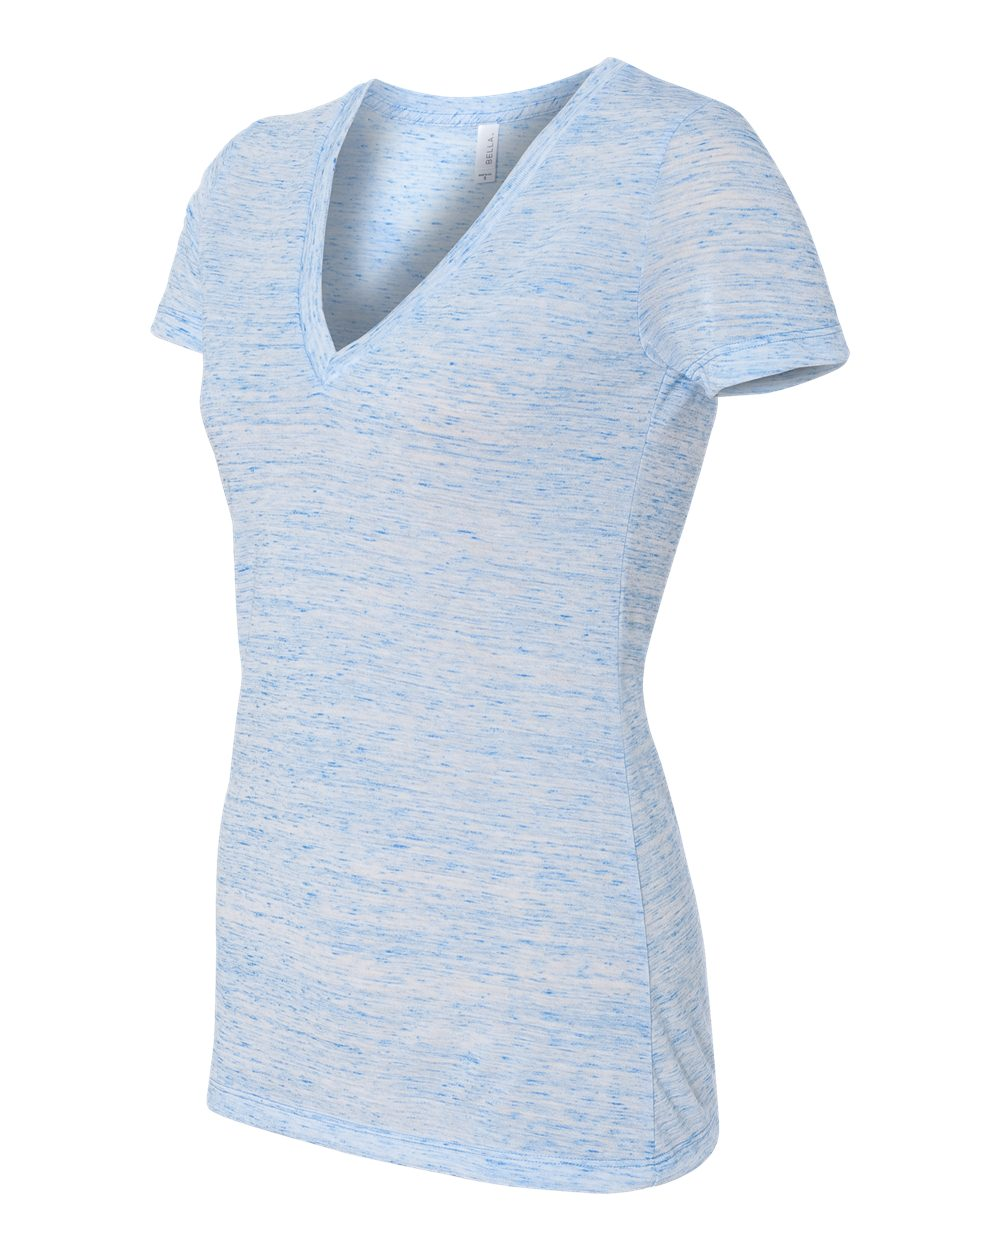 Bella-Canvas-Women-039-s-Jersey-Short-Sleeve-Deep-V-Neck-T-Shirt-B6035-S-2XL thumbnail 36